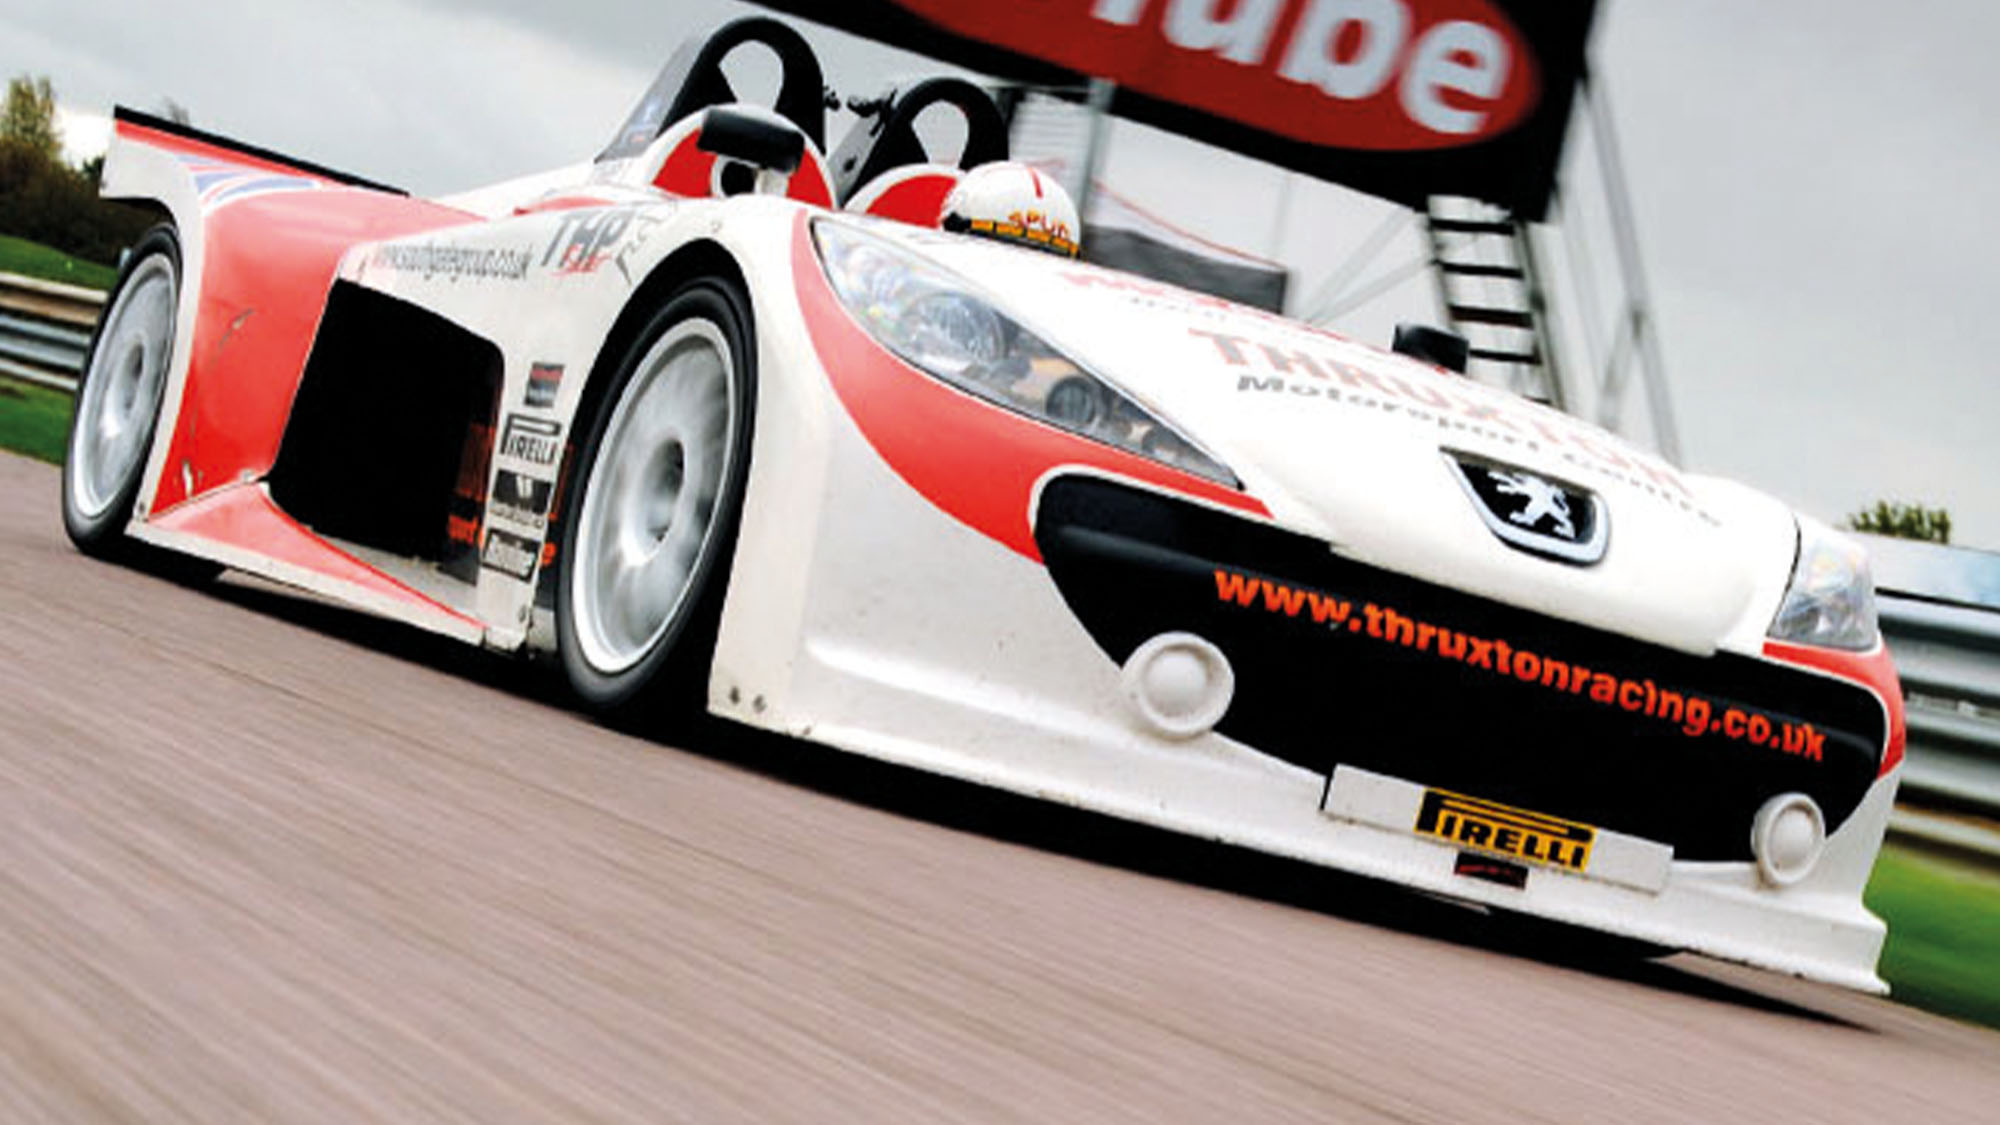 Thruxton driving experience